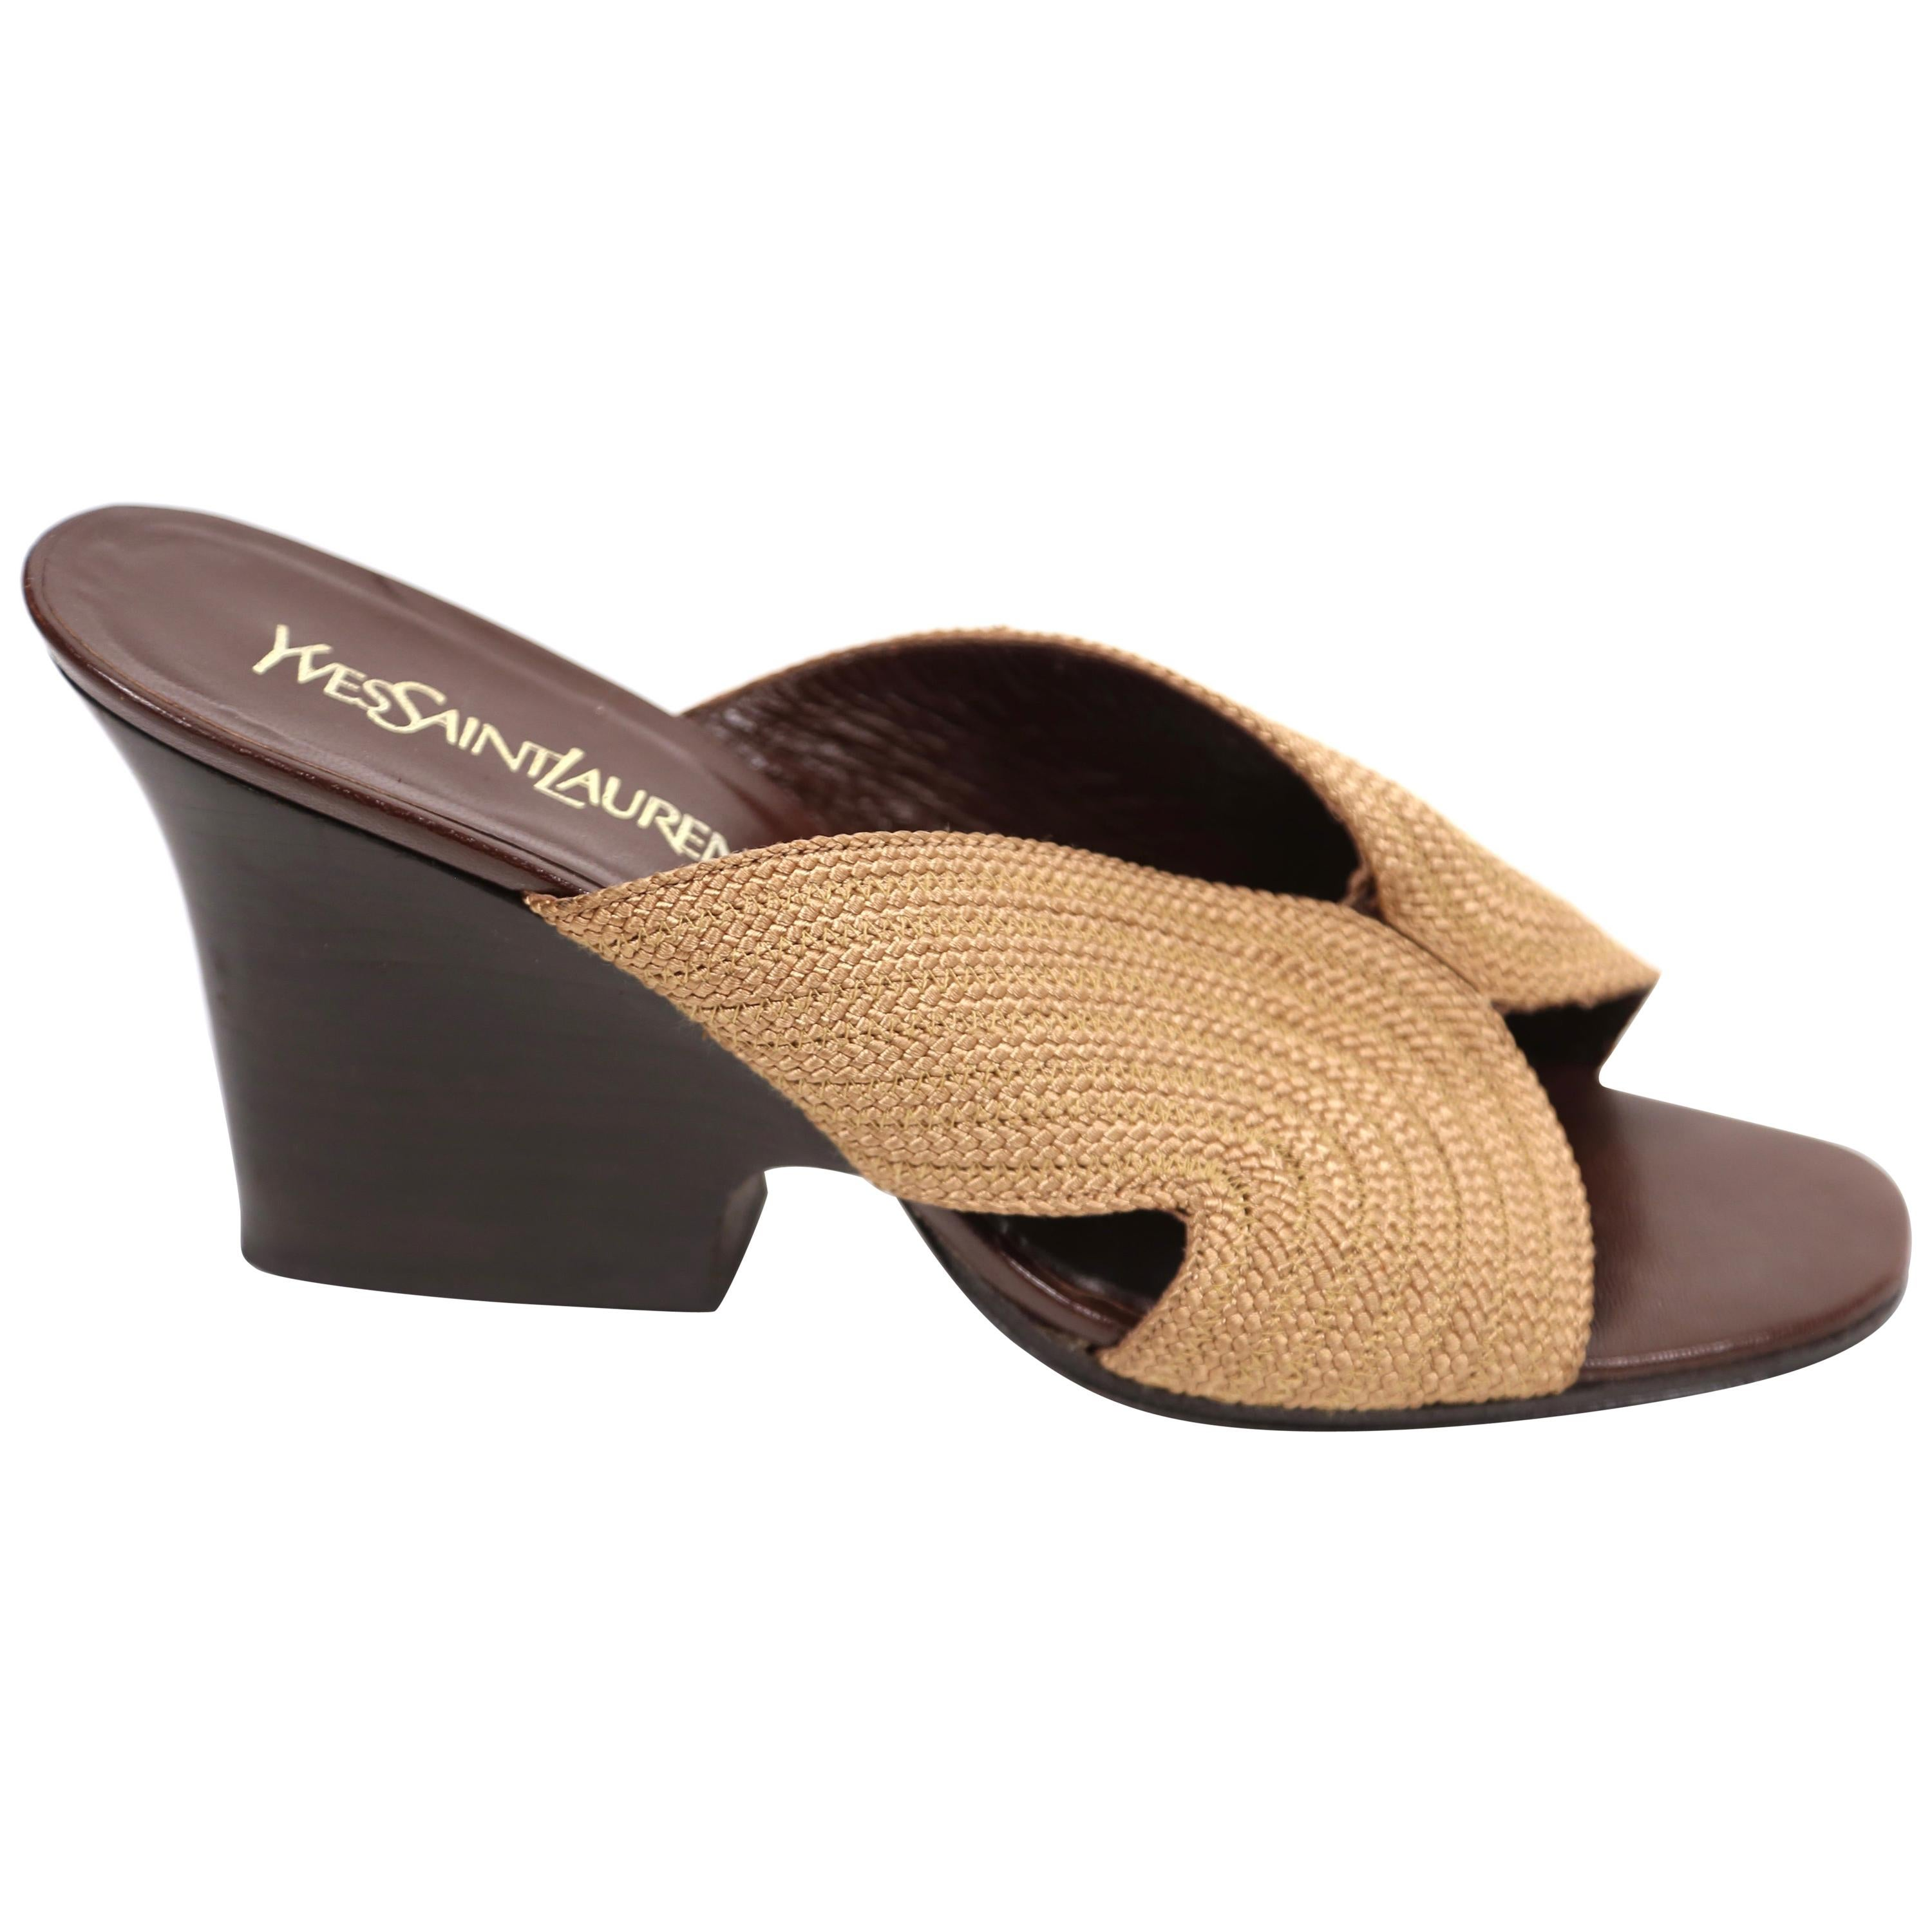 1980's YVES SAINT LAURENT woven sandals with sculpted heels - 10